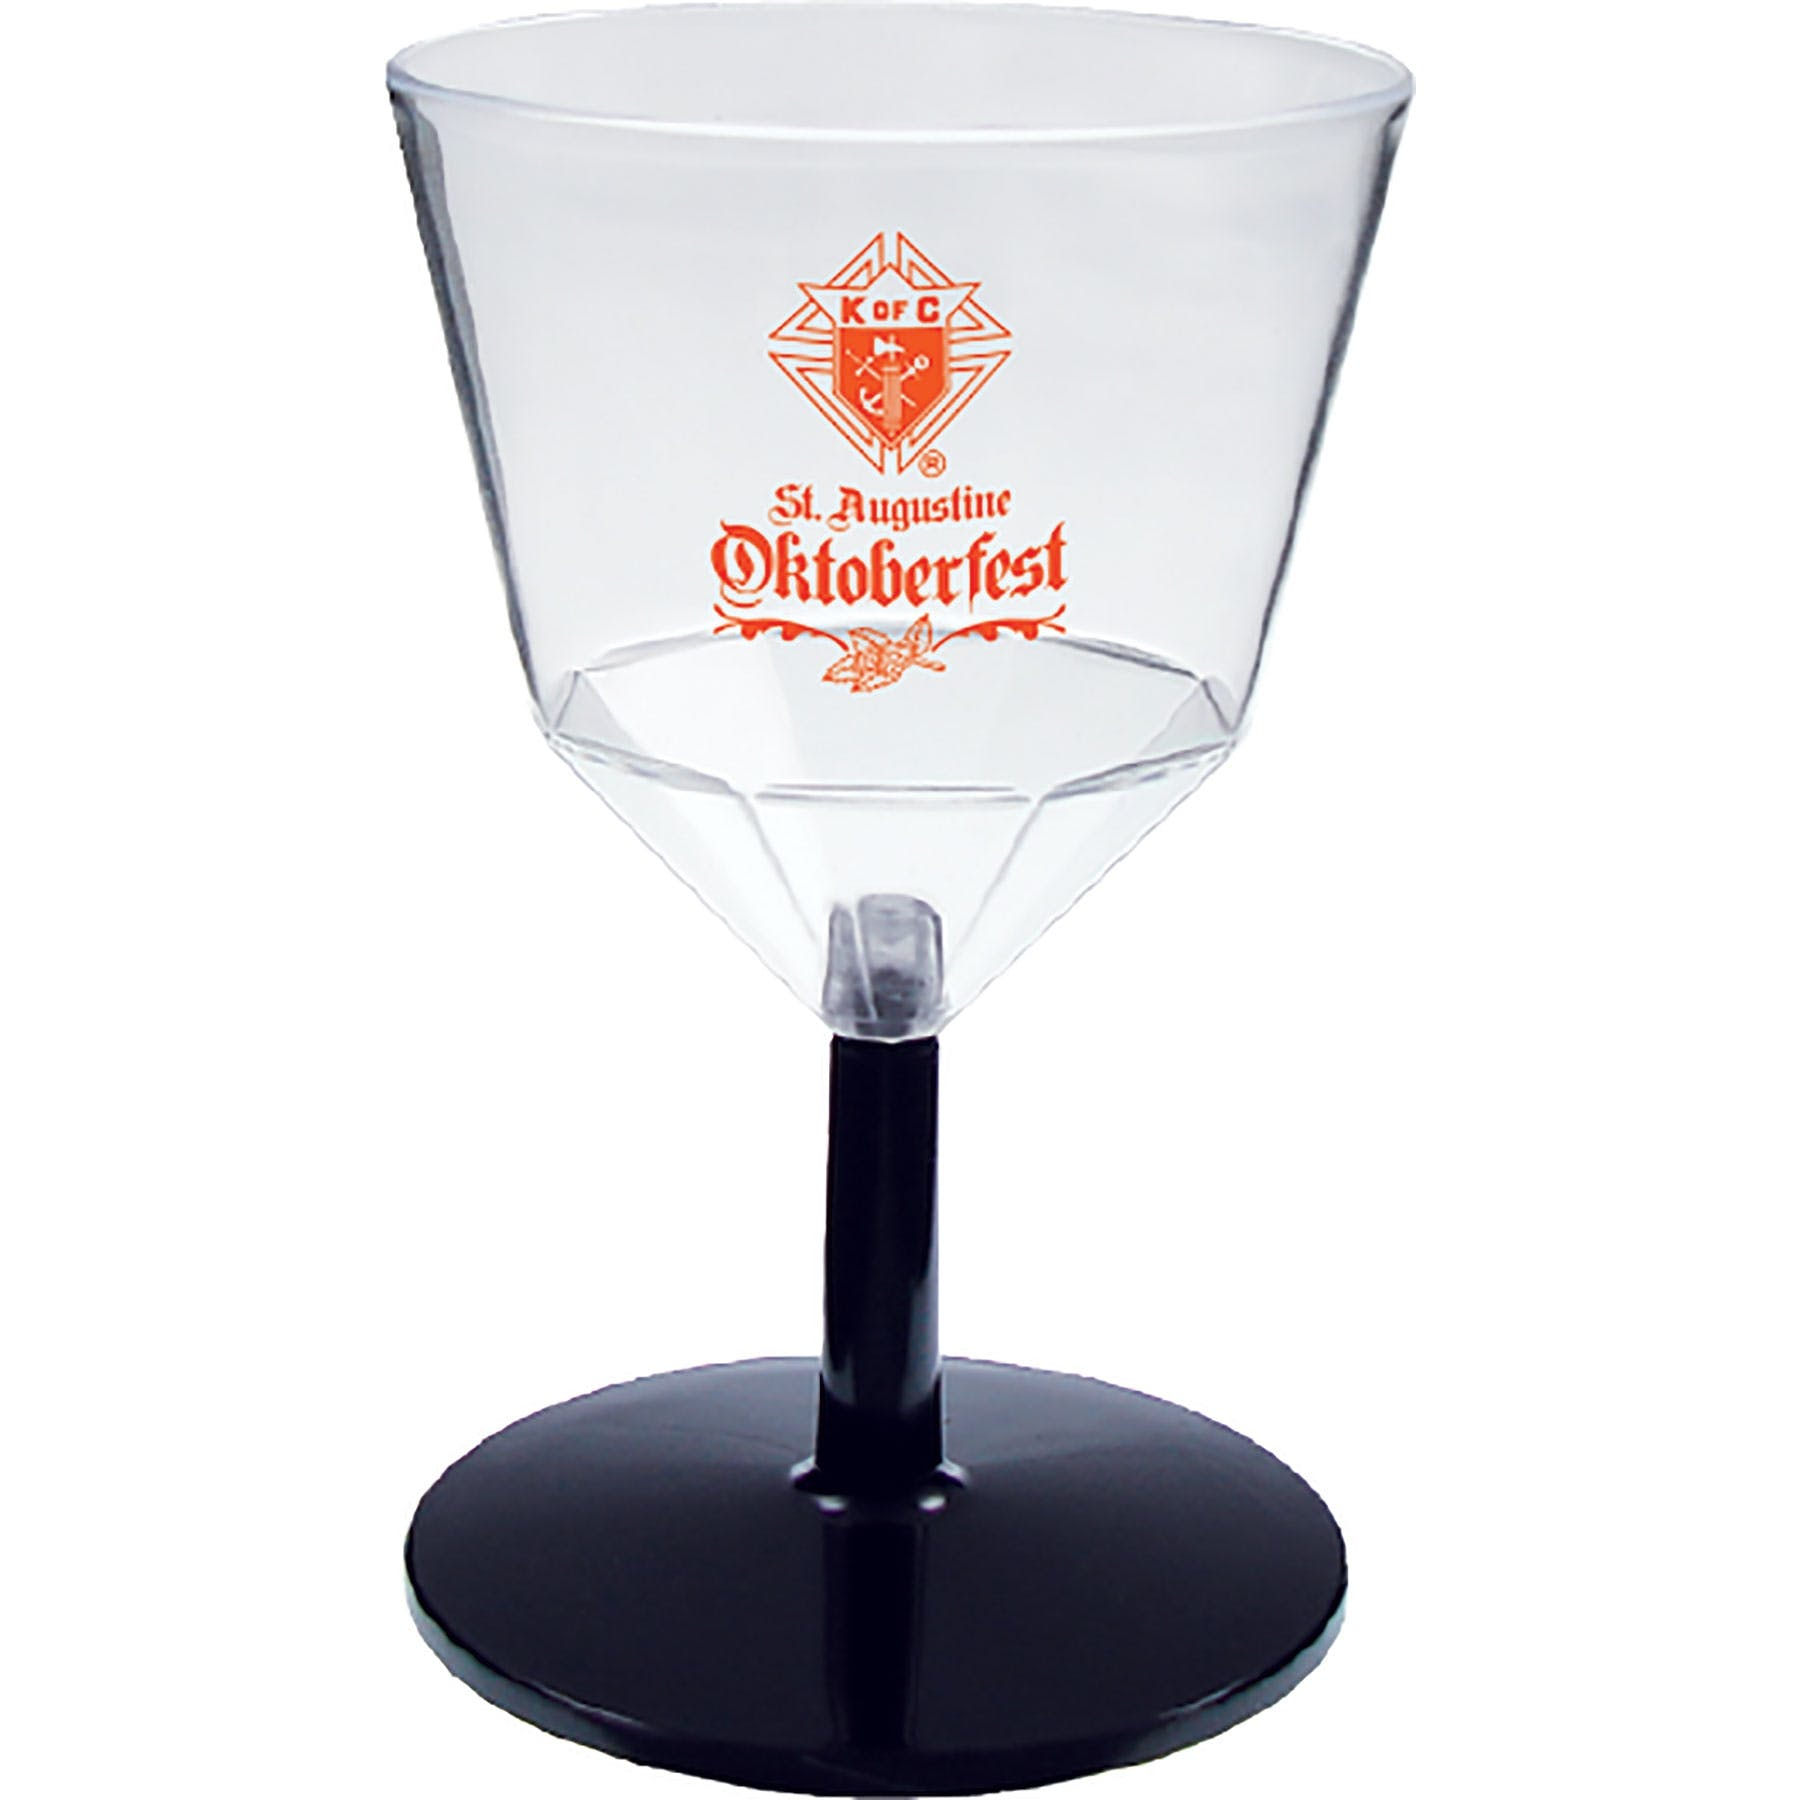 2 Oz. Wine Glass with Contrast Stem (Item # LDFJR-JVVDW) Wine glass sold by InkEasy